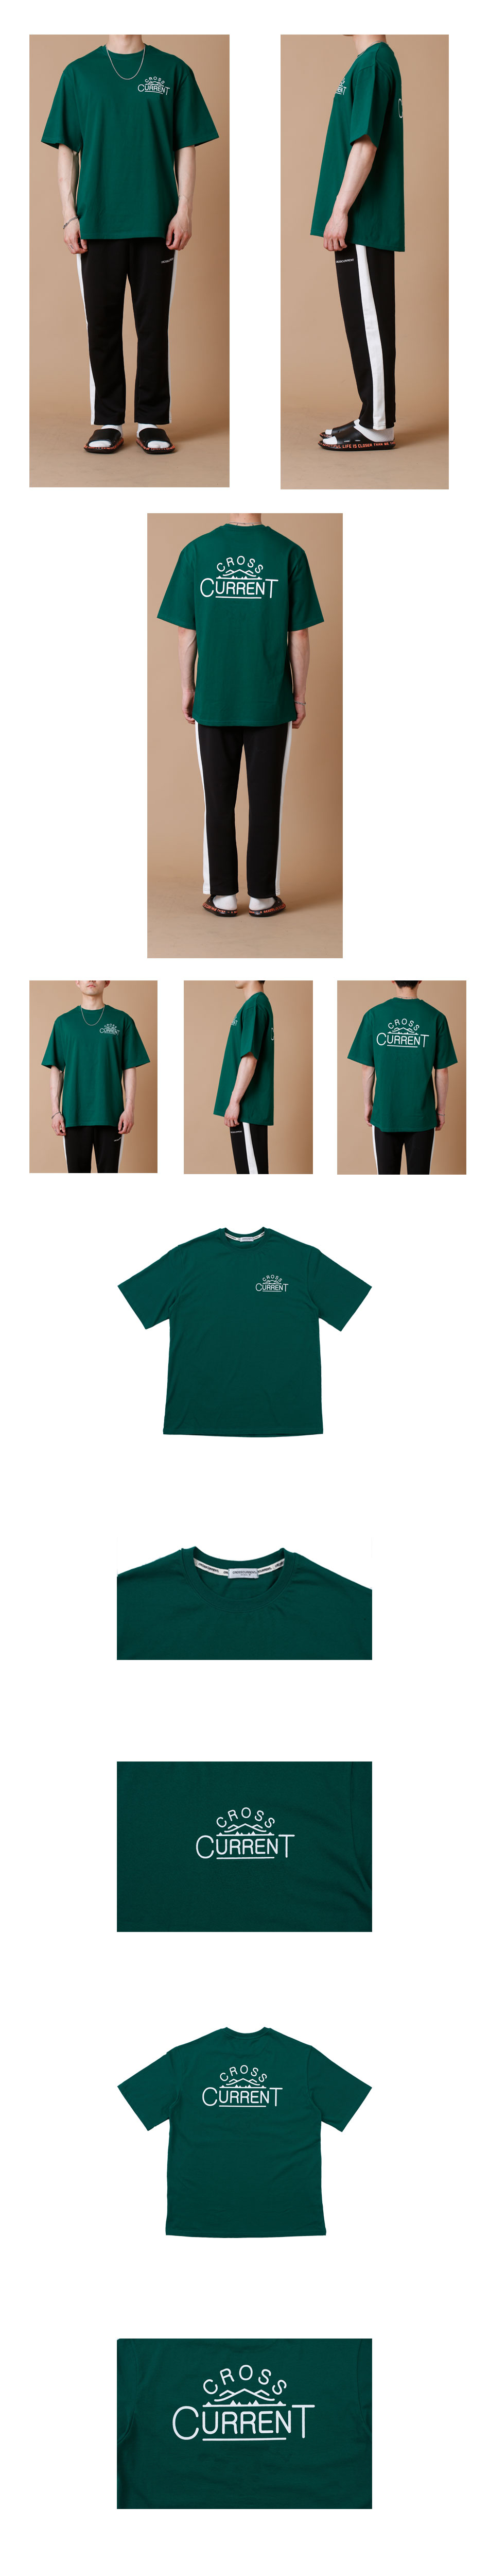 #crct00001-CCT-Mountain-Short-Sleeve-그린950.jpg